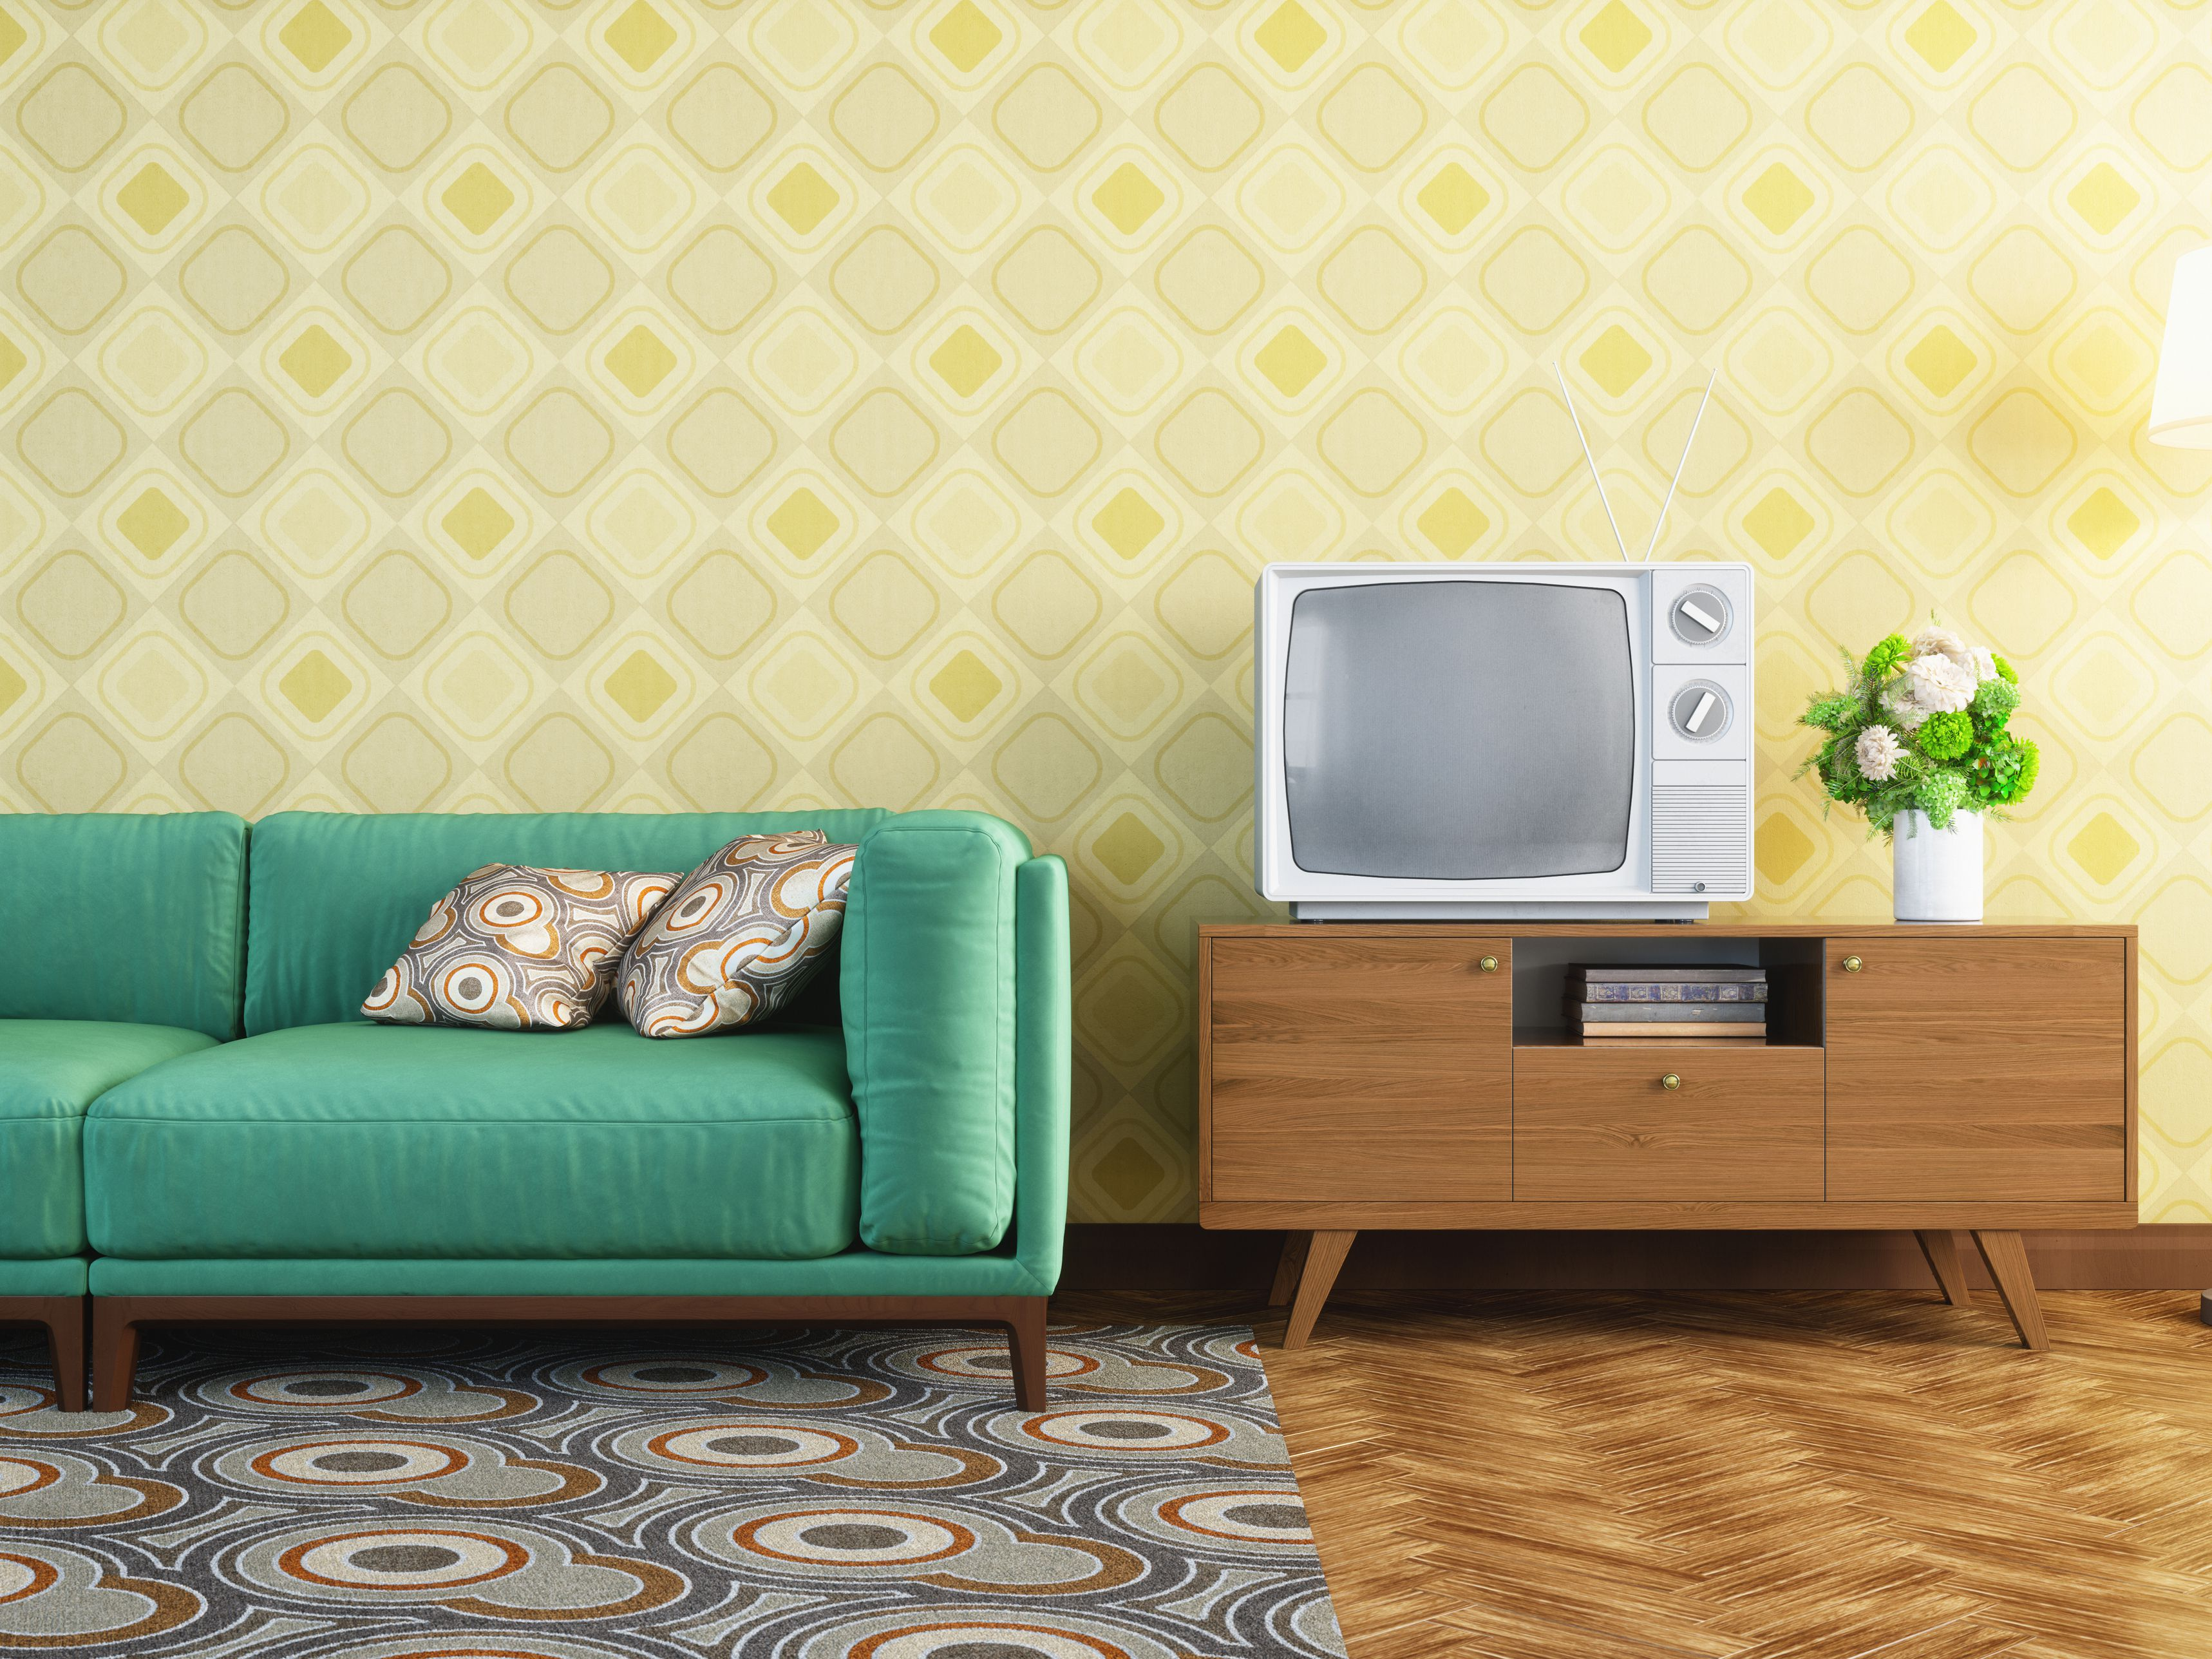 6 Decorating Tips For Retro Style